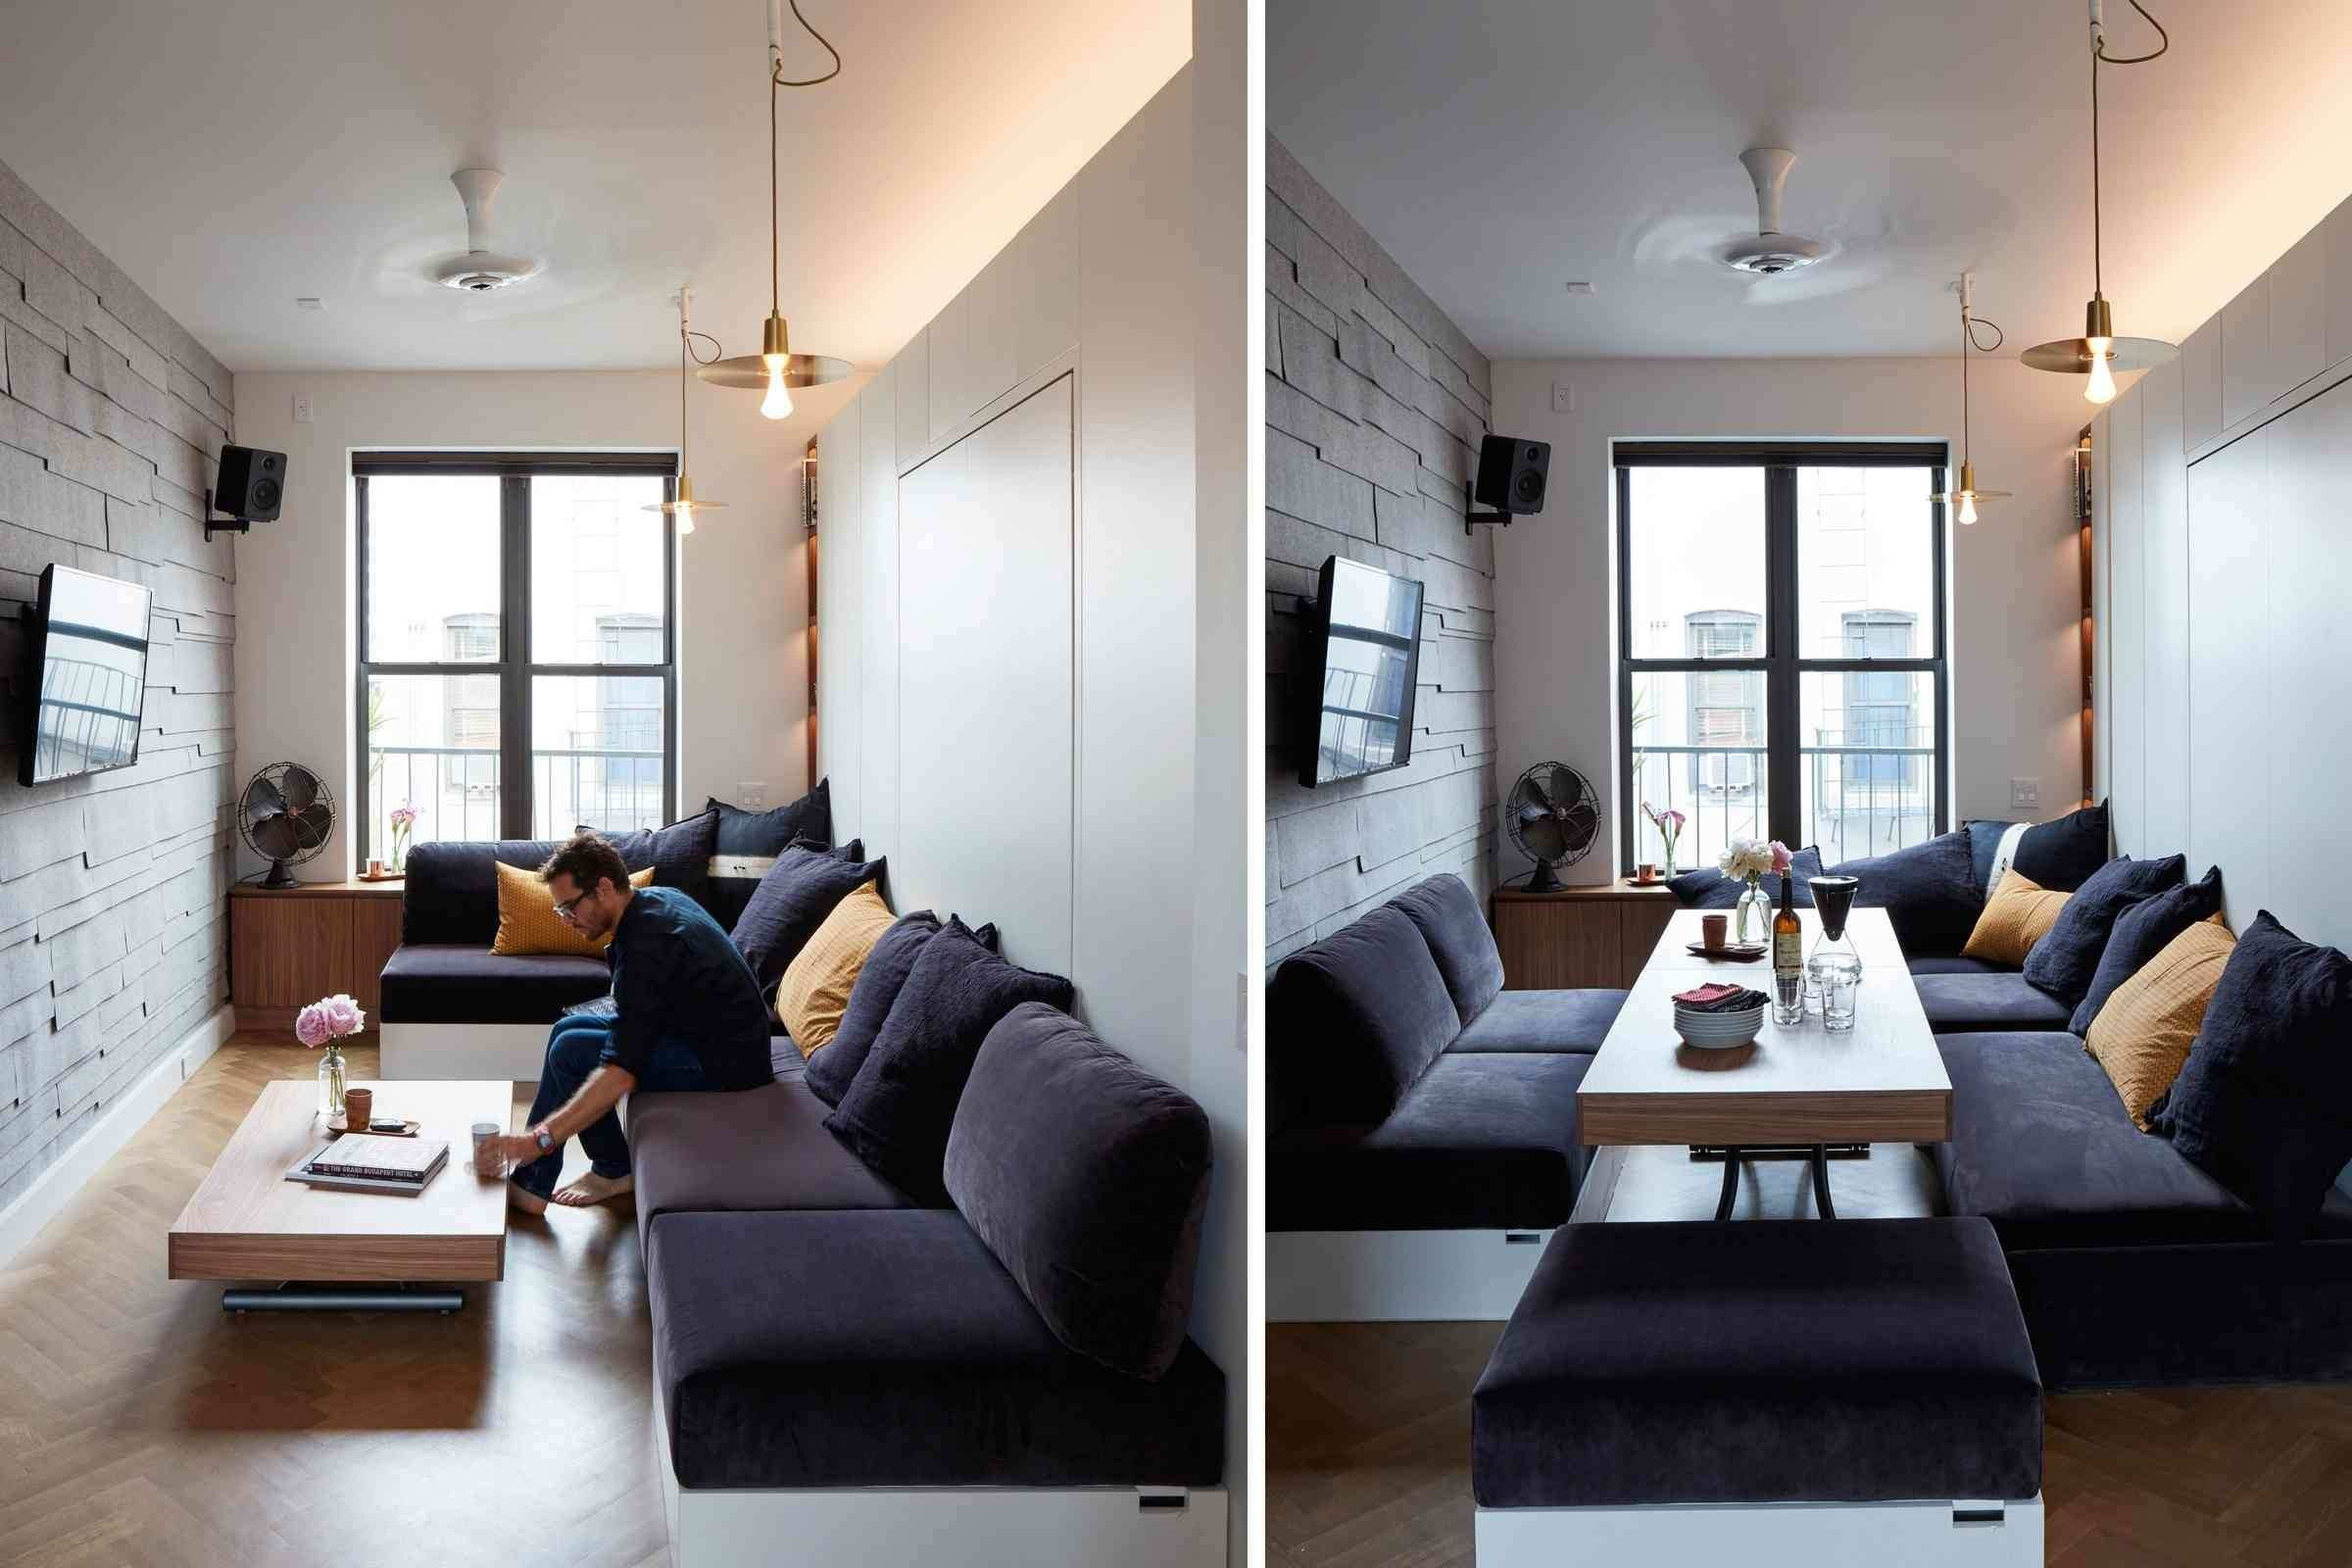 Empty Living Room with Furniture Luxury 12 Perfect Studio Apartment